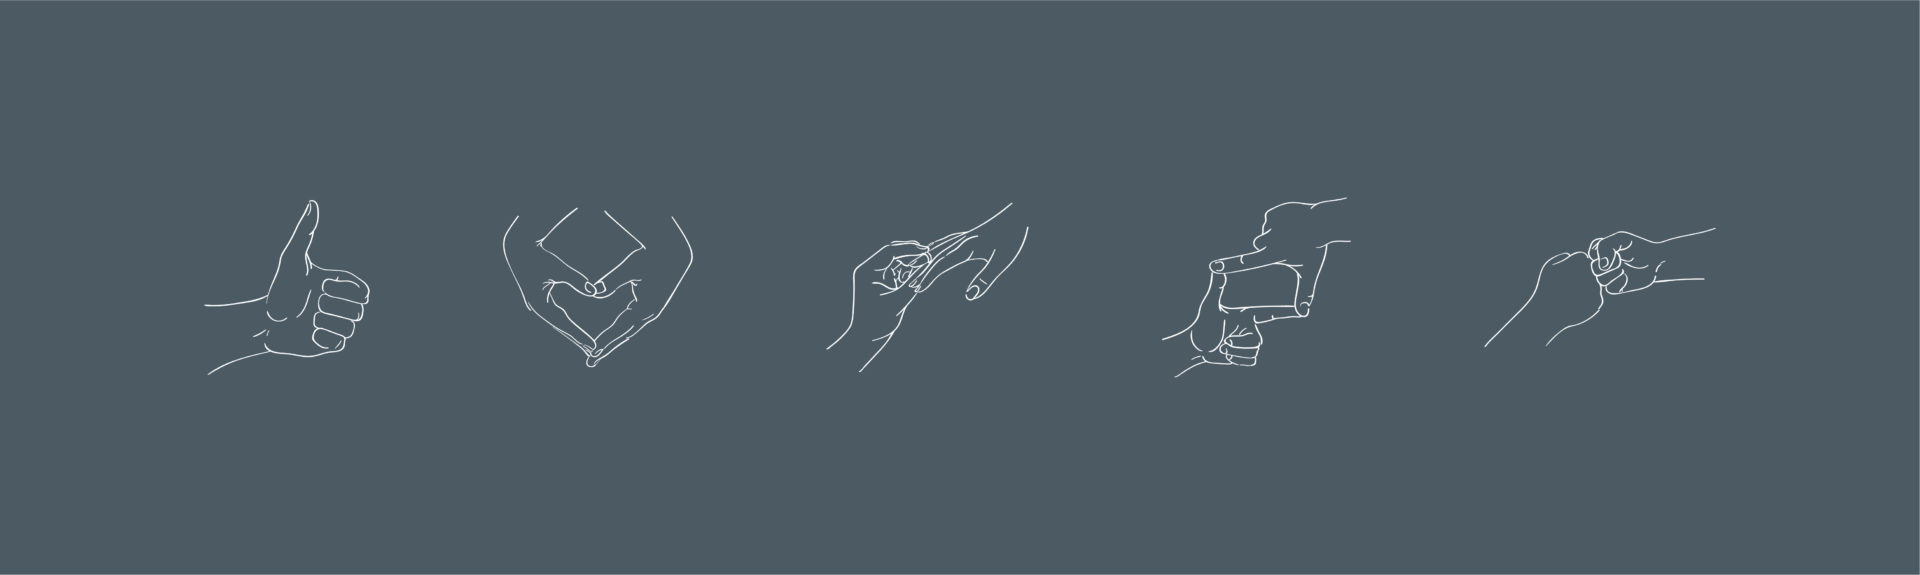 Proposal Planners icon illustrations hands